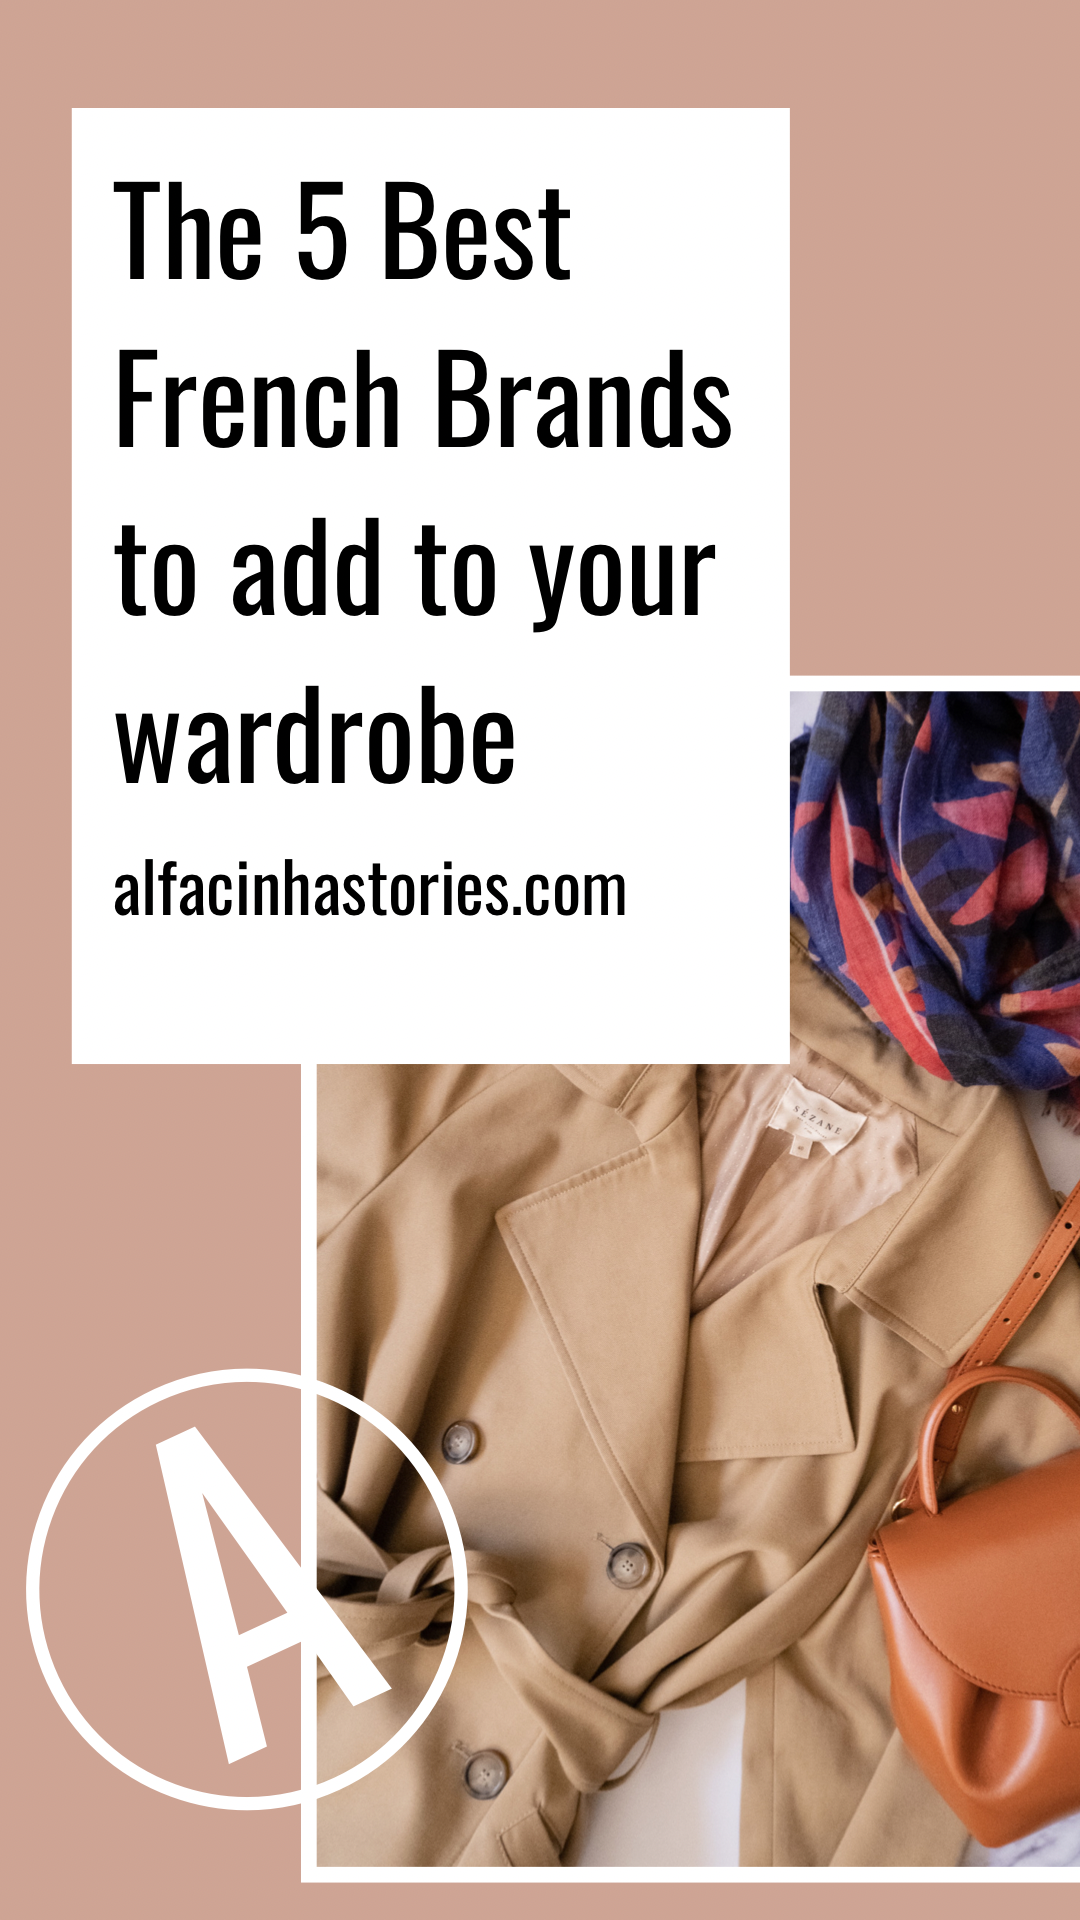 The 5 Best French Brands to add to your wardrobe